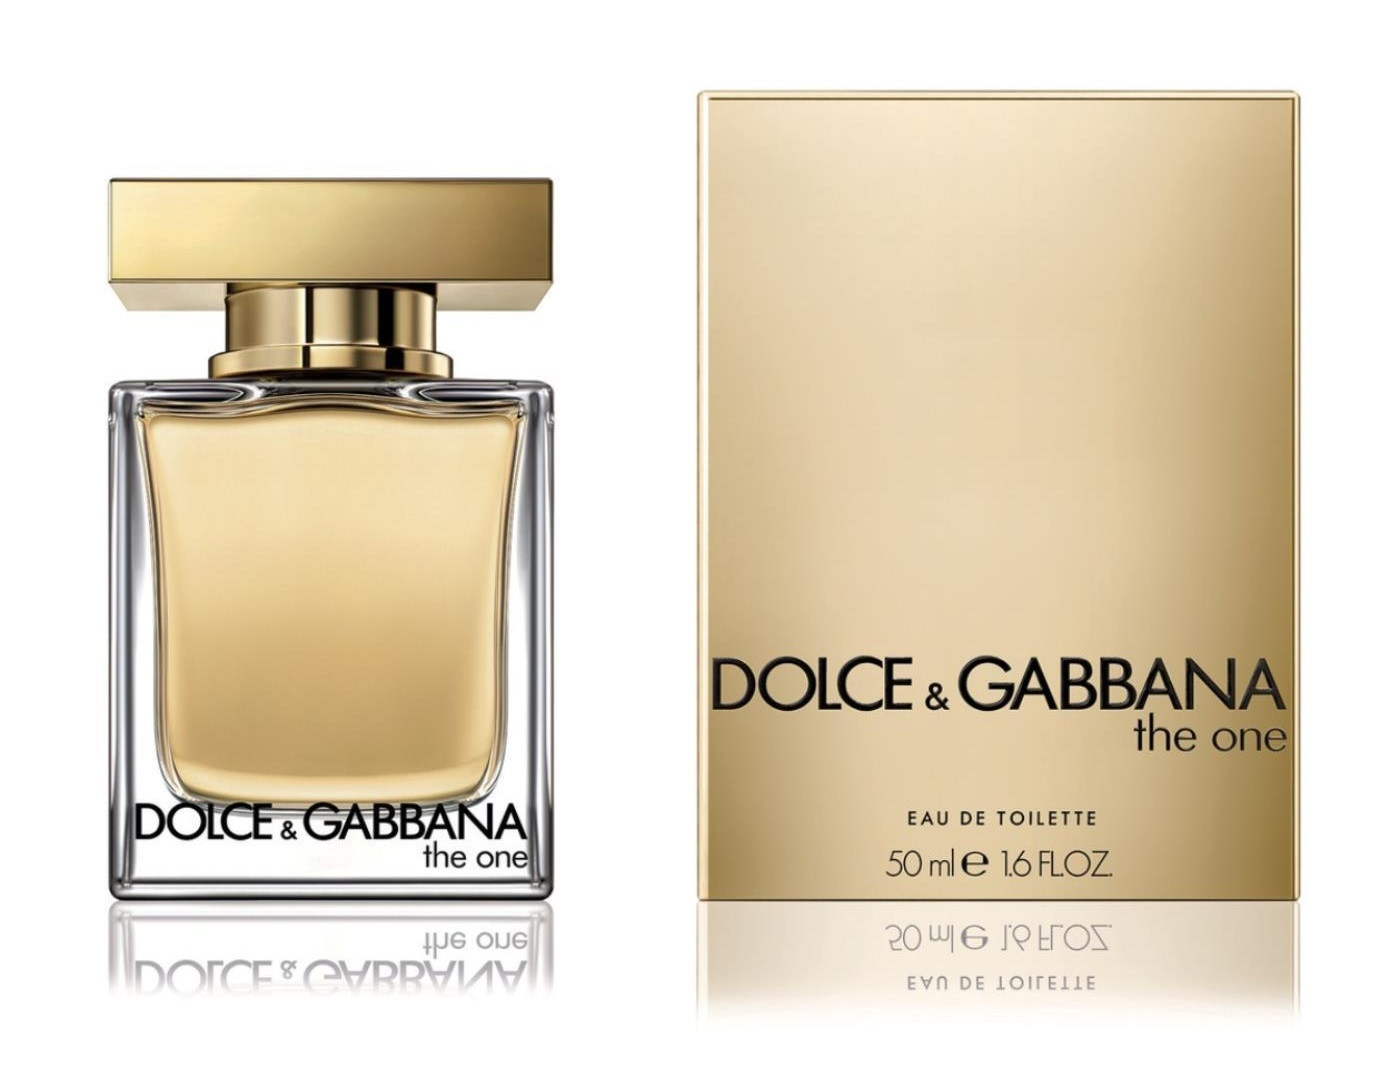 Dolce&Gabbana The One Eau de Toilette Туалетная вода 50 ml